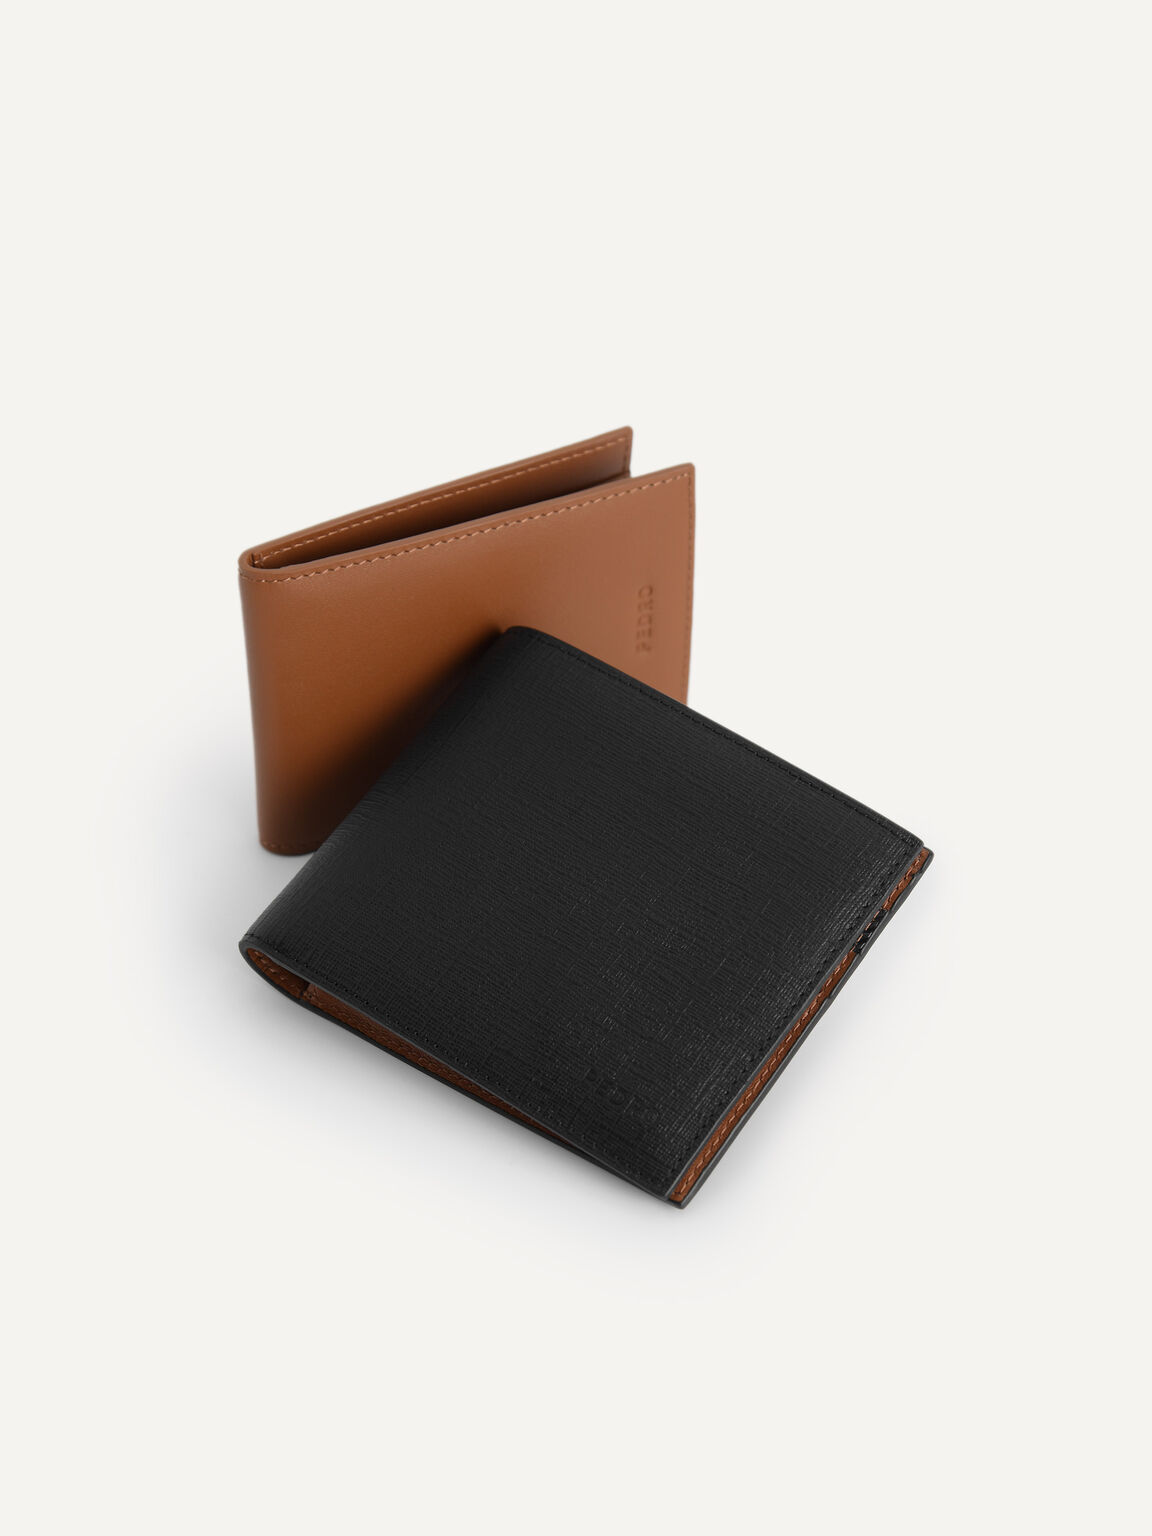 Textured Leather Bi-Fold Wallet with Insert, Black, hi-res